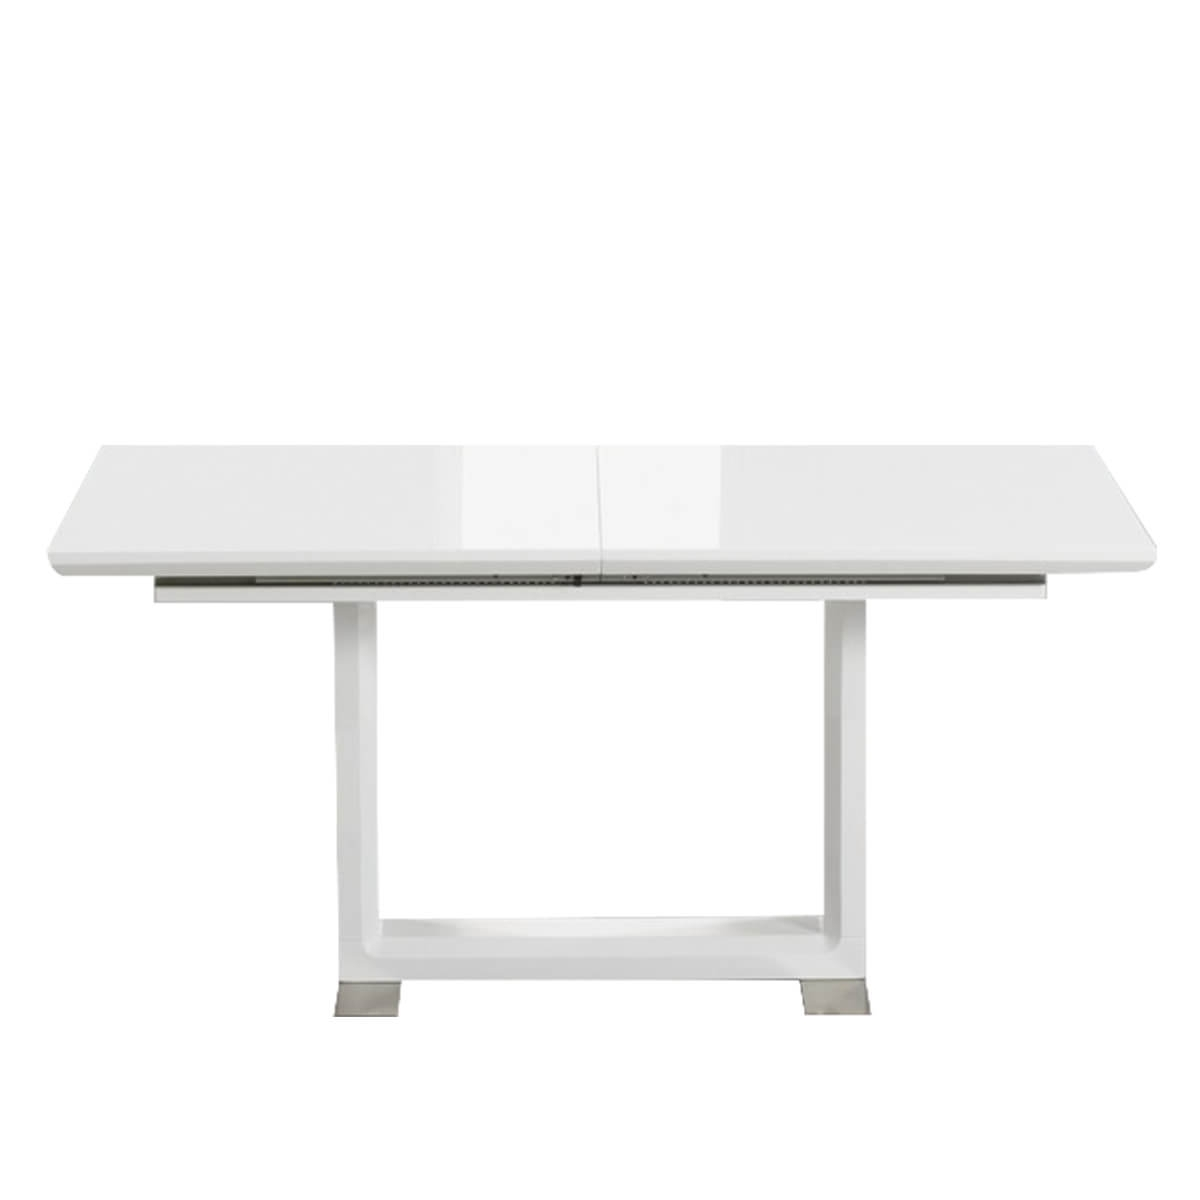 Preferred Beckley 6 8 Seater White High Gloss Extending Dining Table Inside White Gloss Dining Tables 140Cm (Gallery 22 of 25)